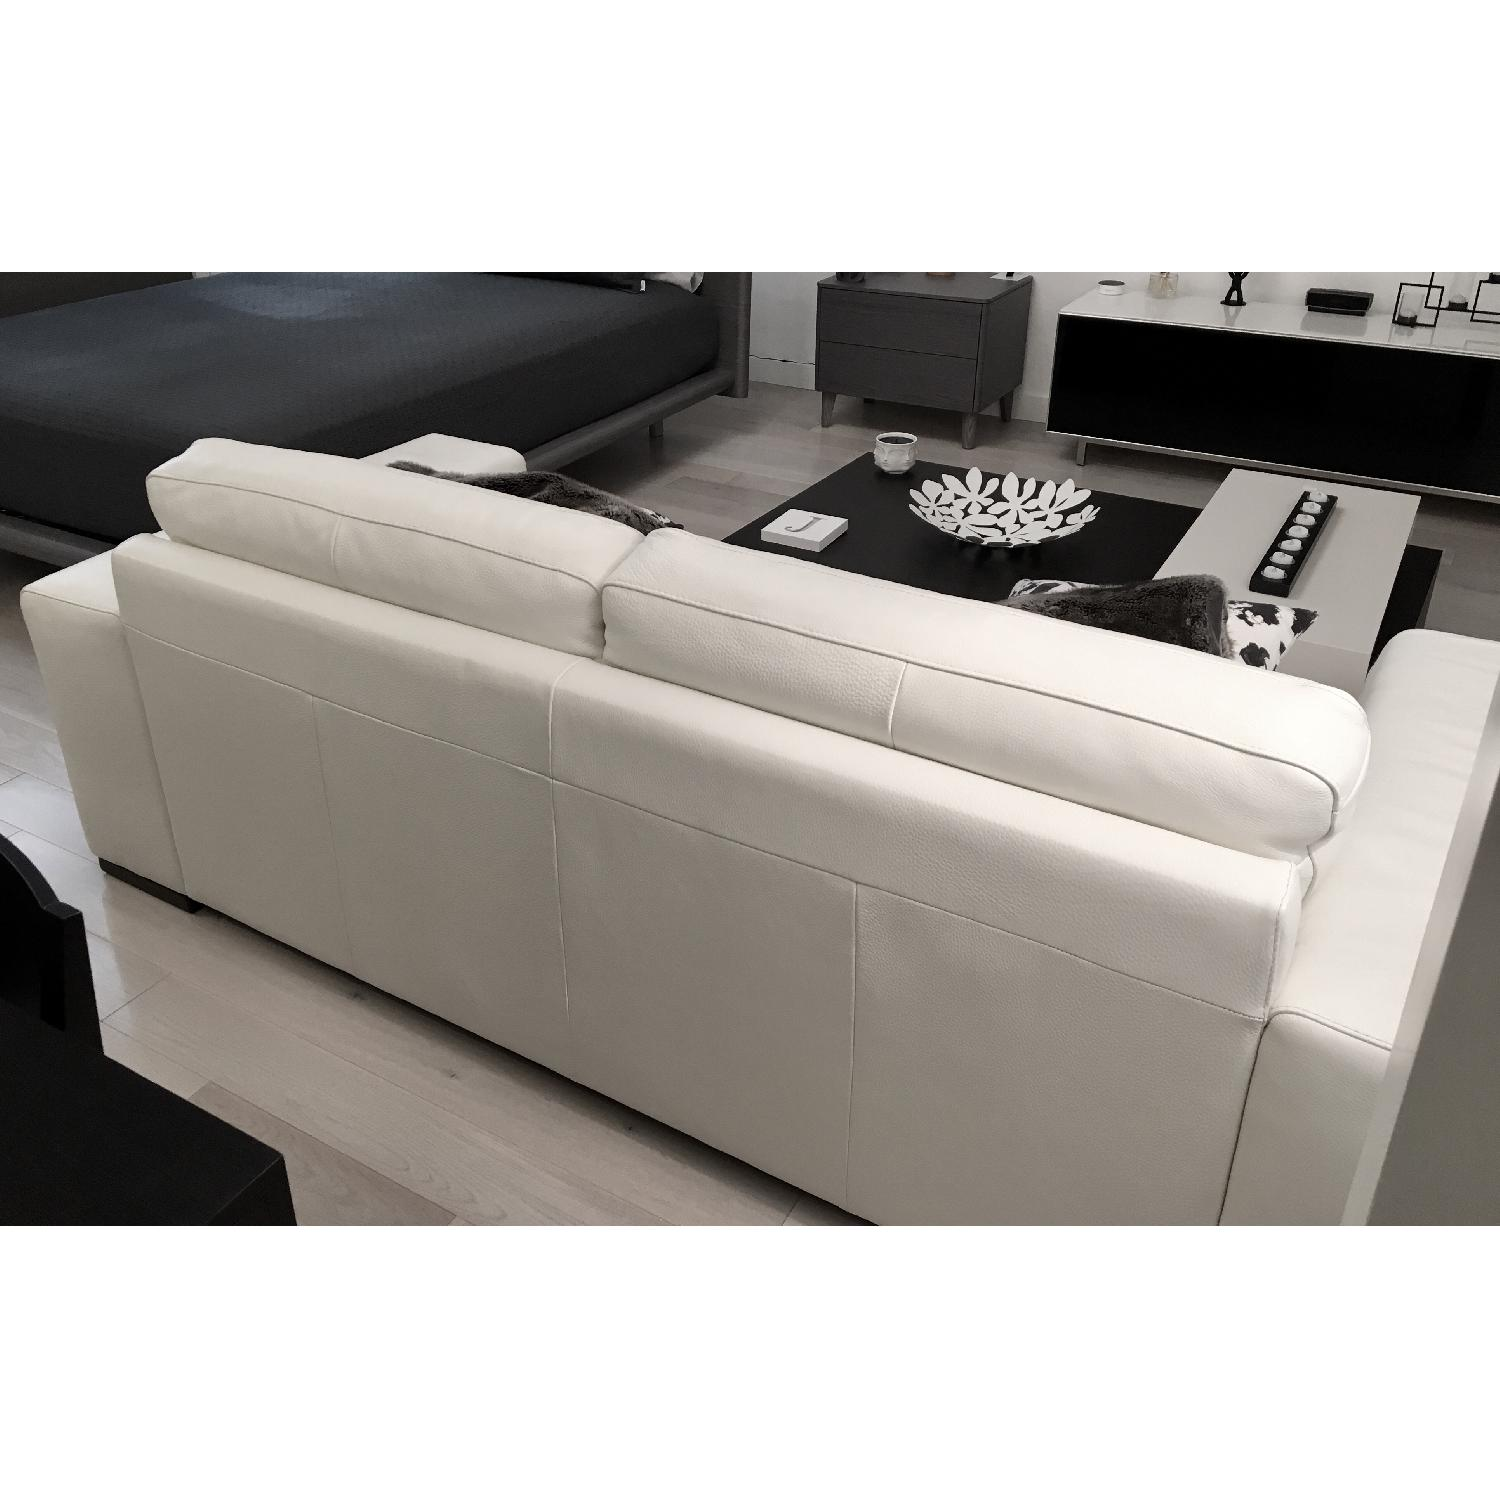 Natuzzi Clark White Leather Sofa - image-6